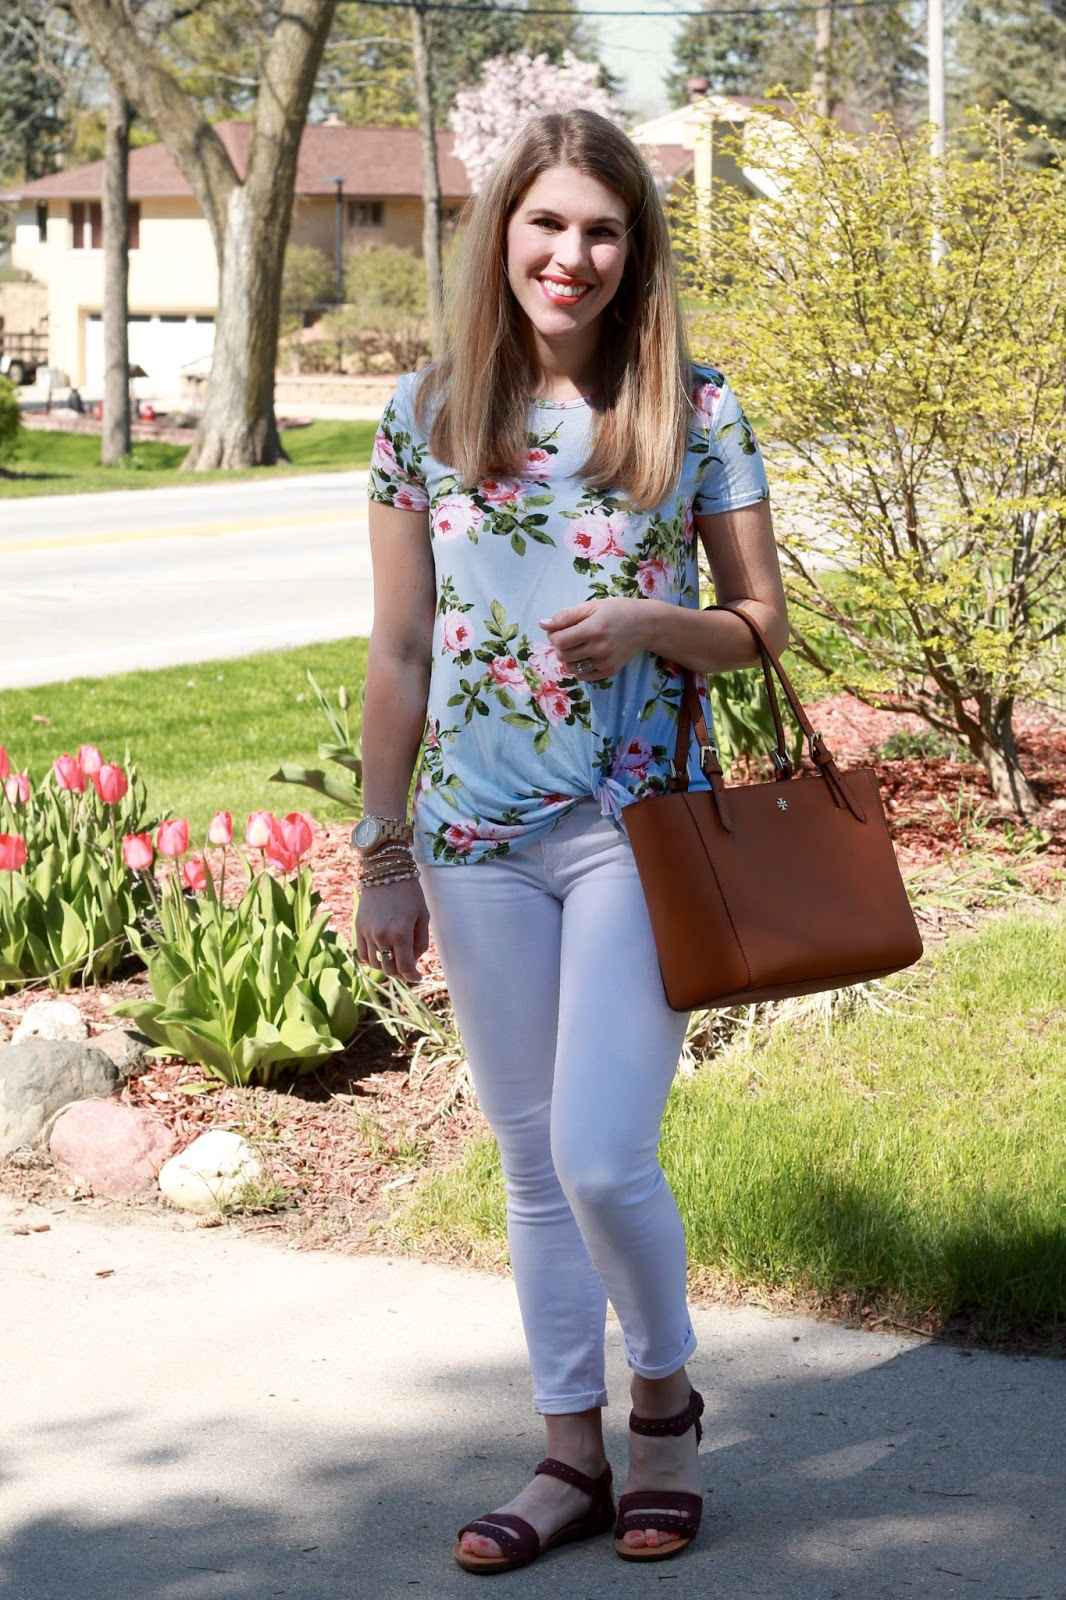 spring fashion, fashion, casual style, Blue floral knotted tee, white jeans, burgundy leather sandals, Rocky 4eursole sandal review, Tory Burch tote